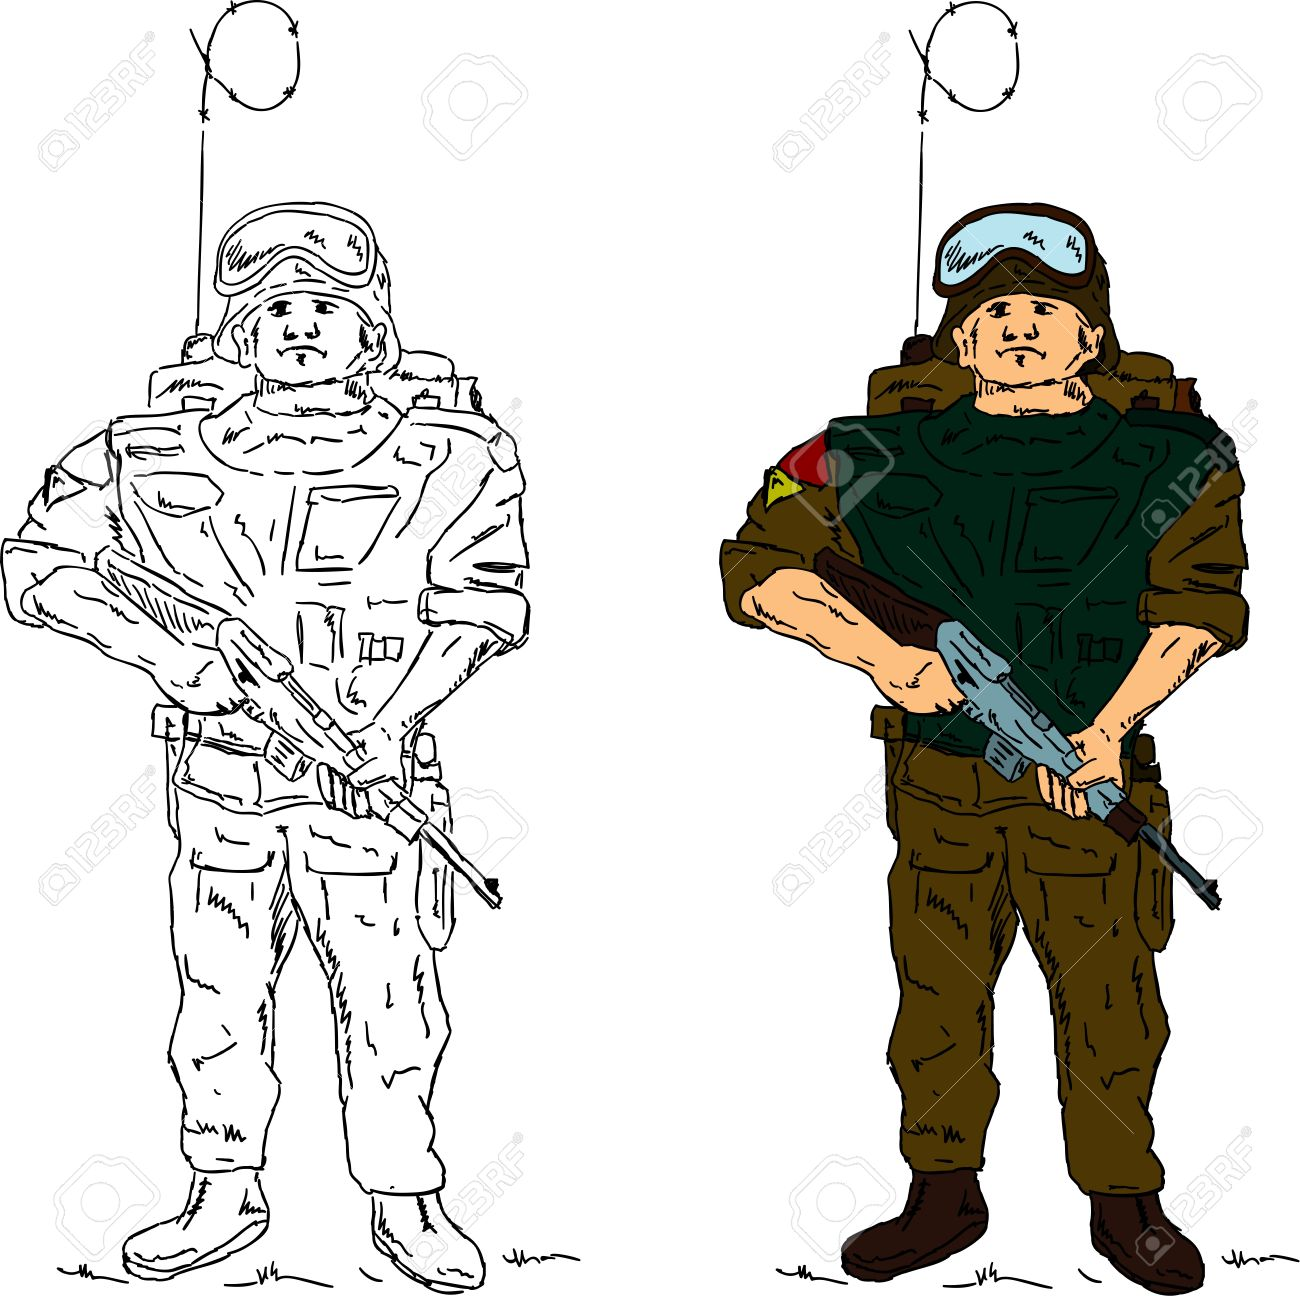 This is an image of Terrible Man Holding Gun Drawing